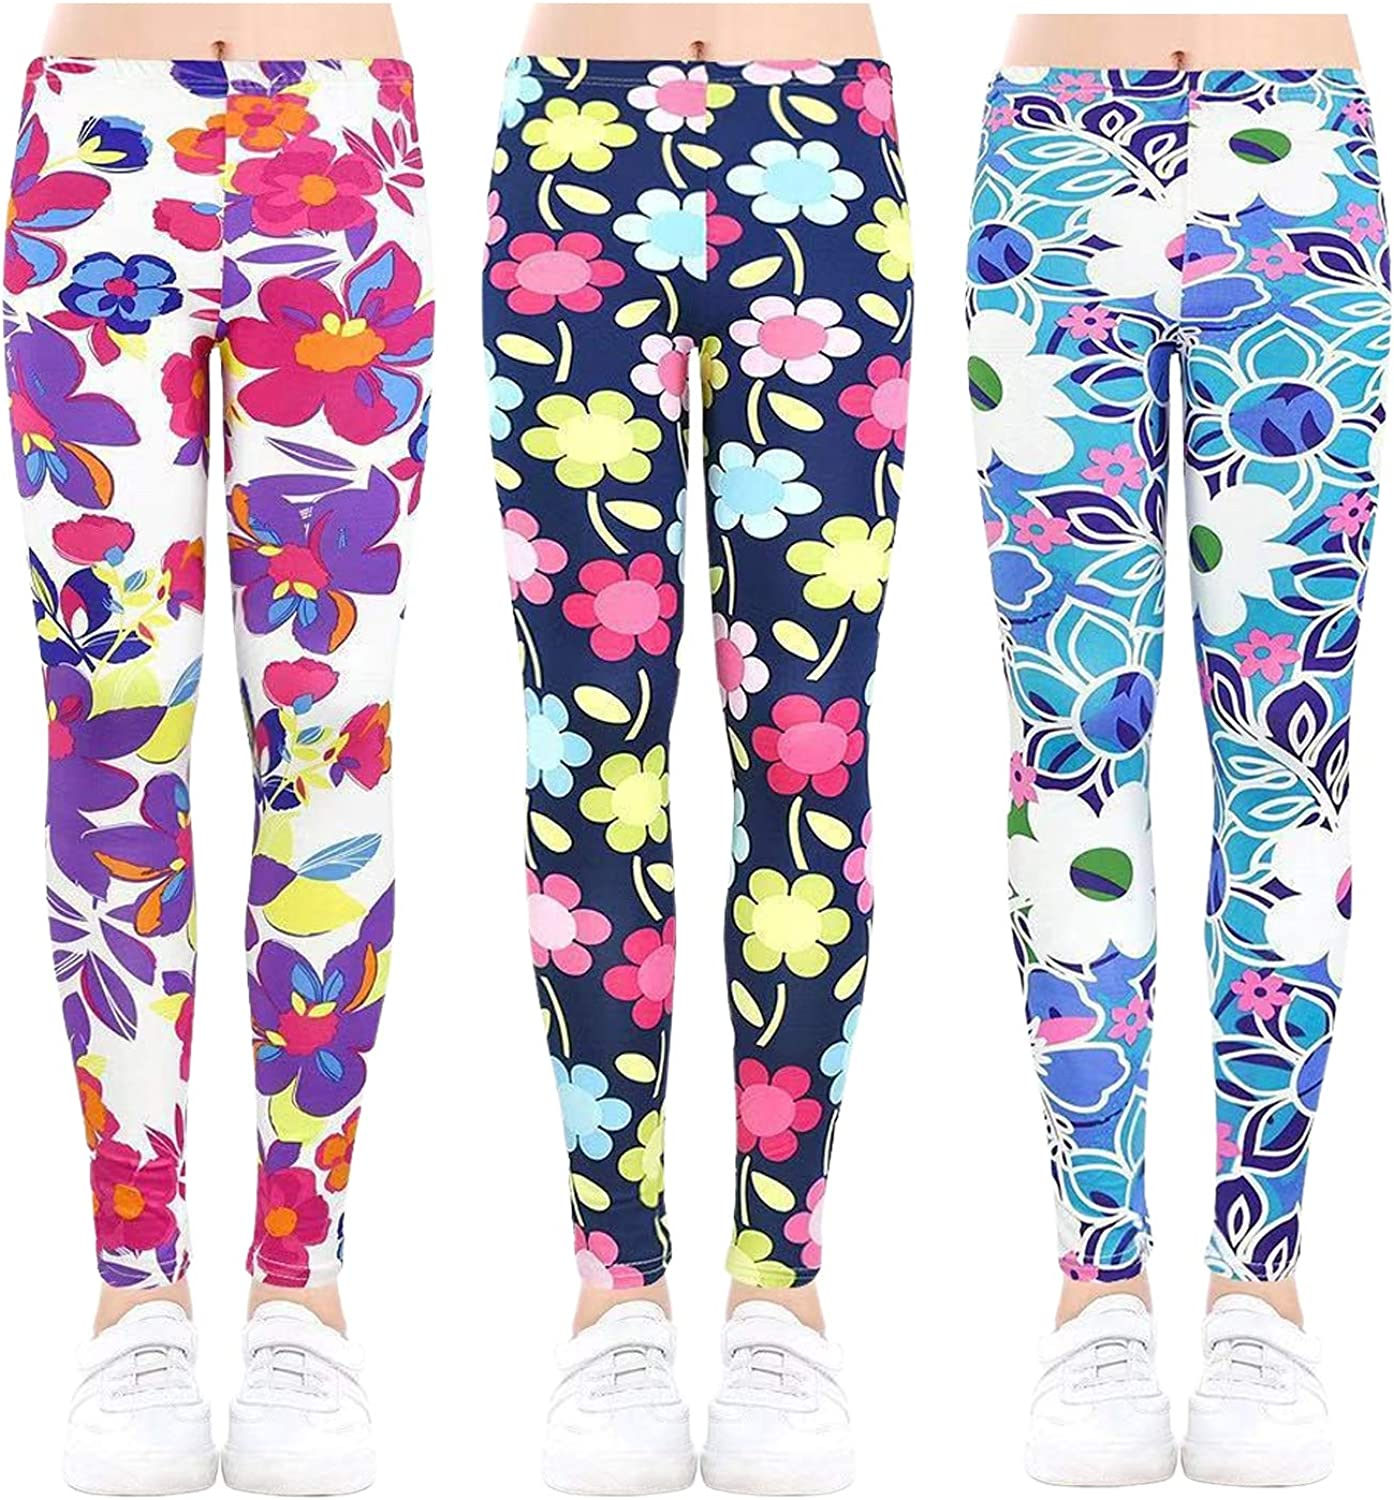 Allesgut Girls' Assorted Leggings Ankle Pants Length Bombing new work Super special price Footless Ti